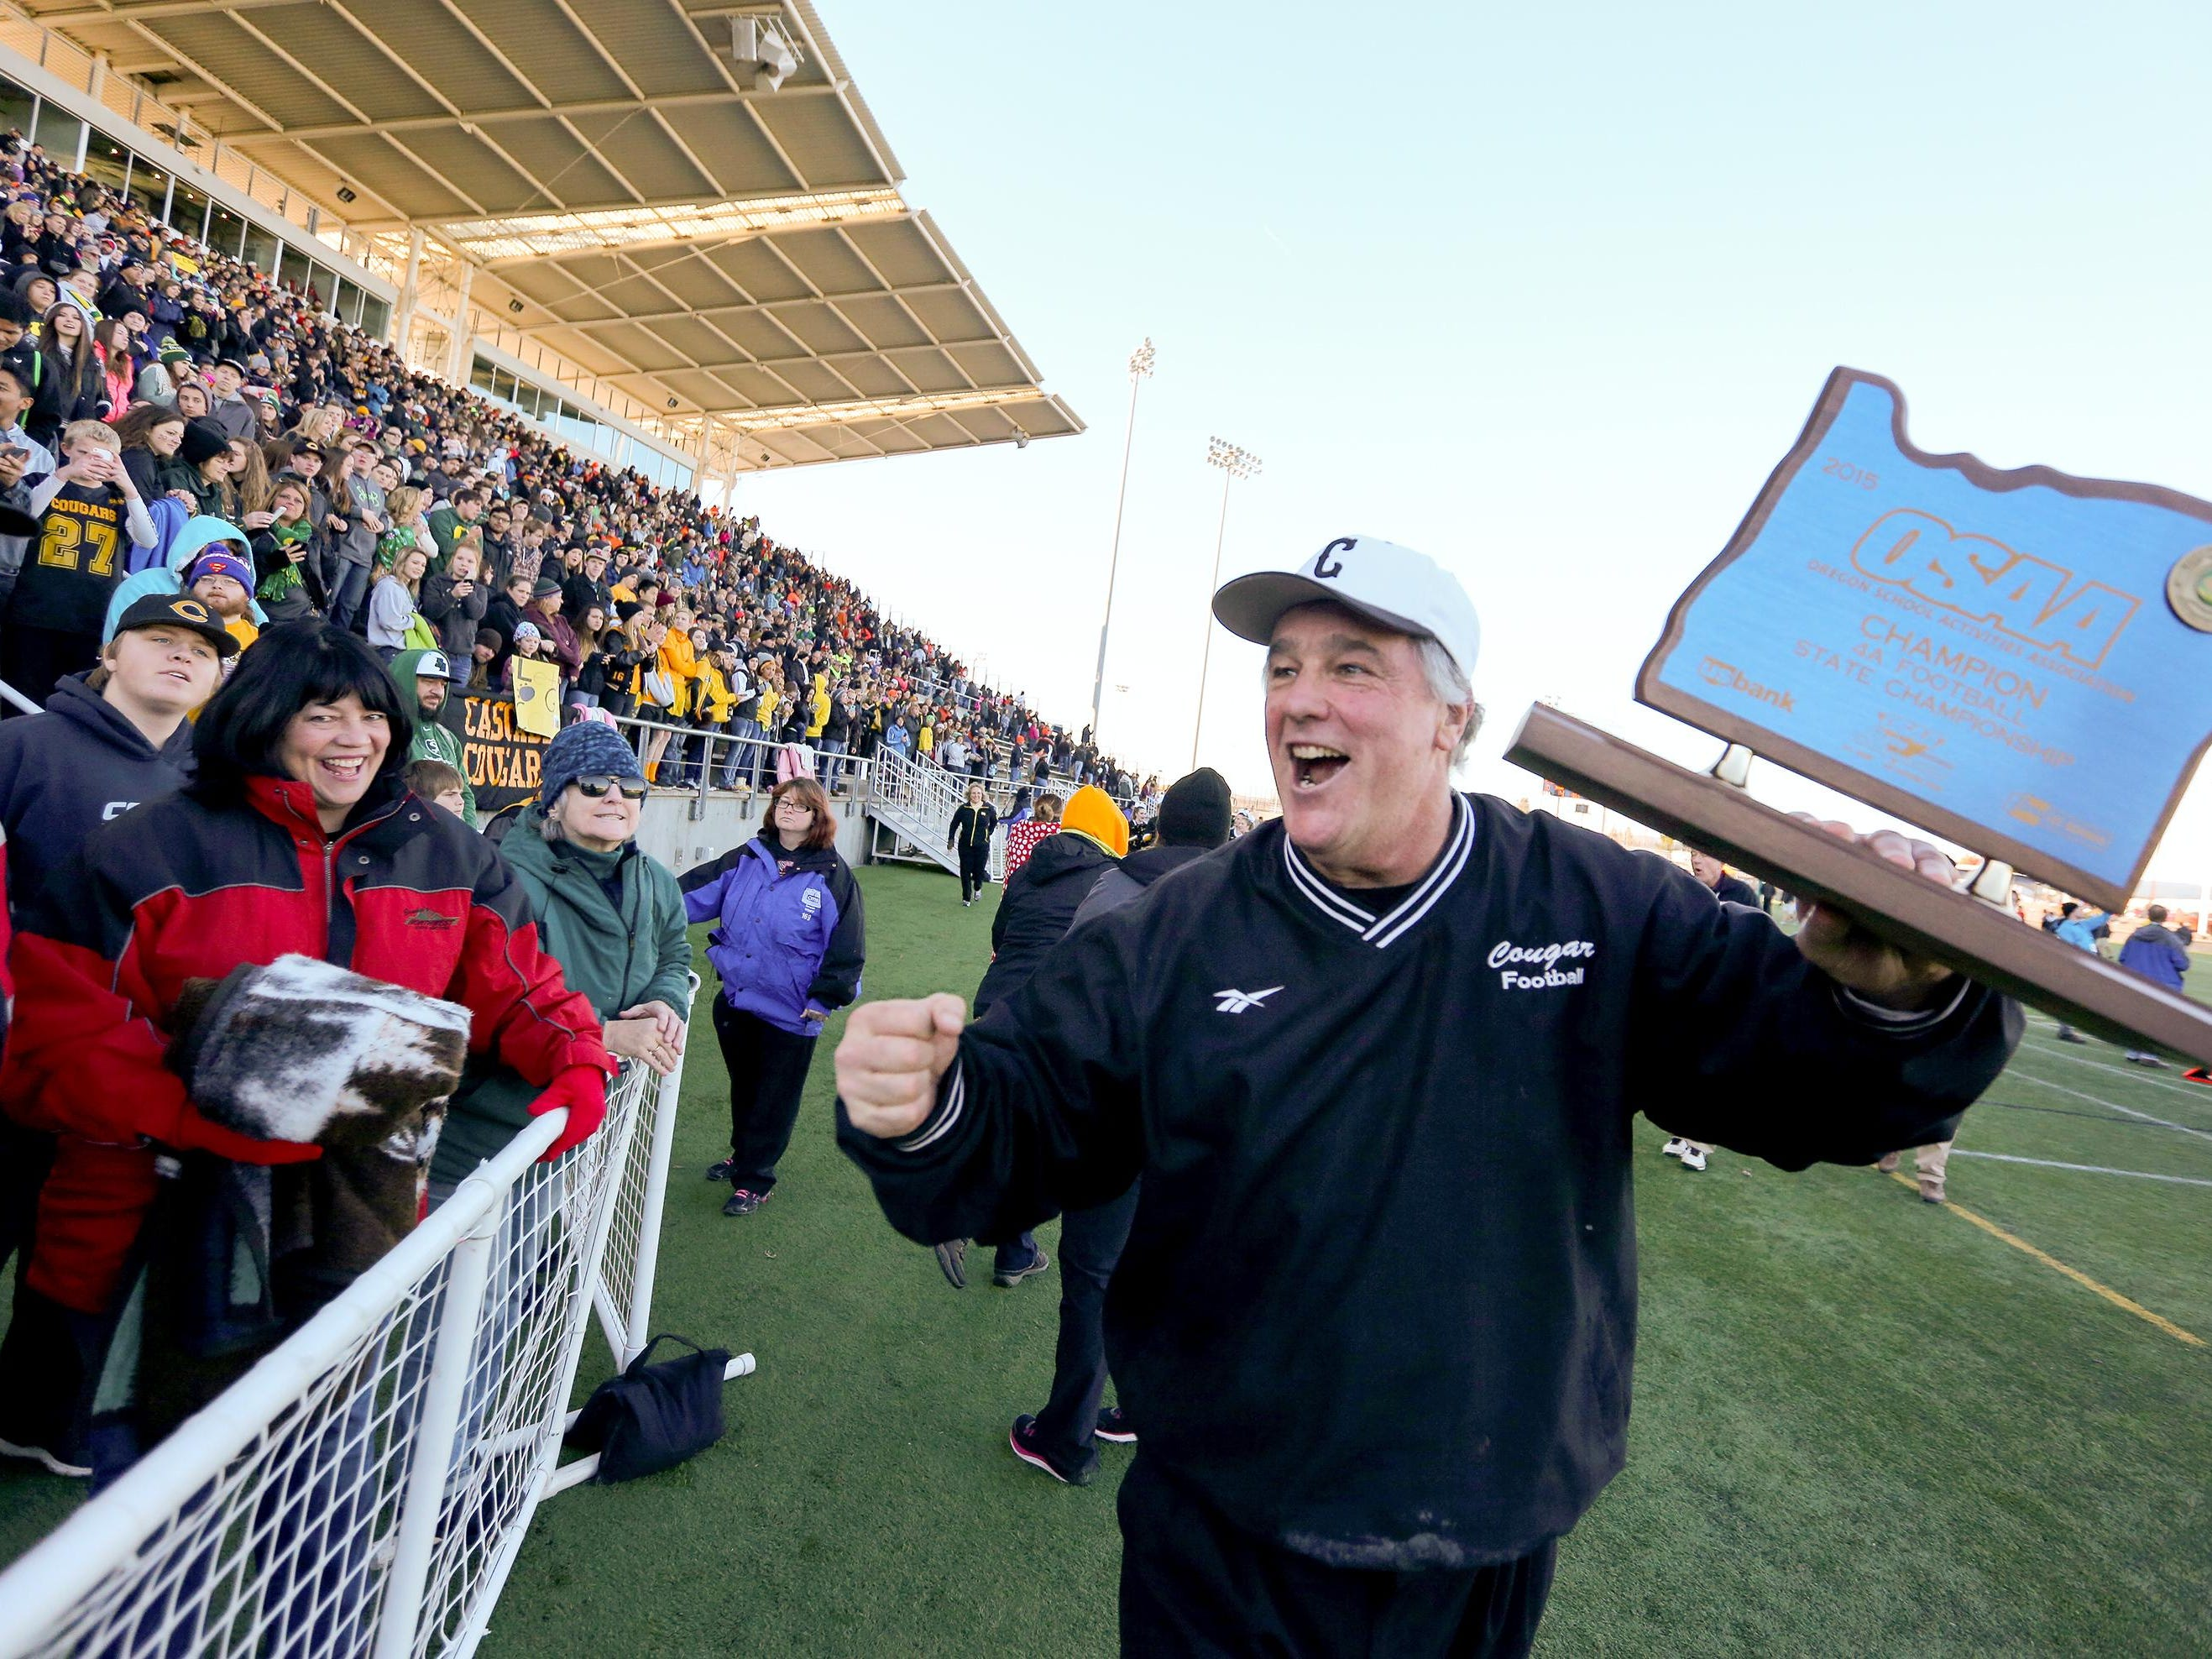 Cascade head coach Steve Turner celebrates with the championship trophy after his team won against Scappoose during the OSAA 4A state championship game, Saturday, November 28, 2015, at Hillsboro Stadium in Hillsboro, Ore. Cascade won the game 37-28.